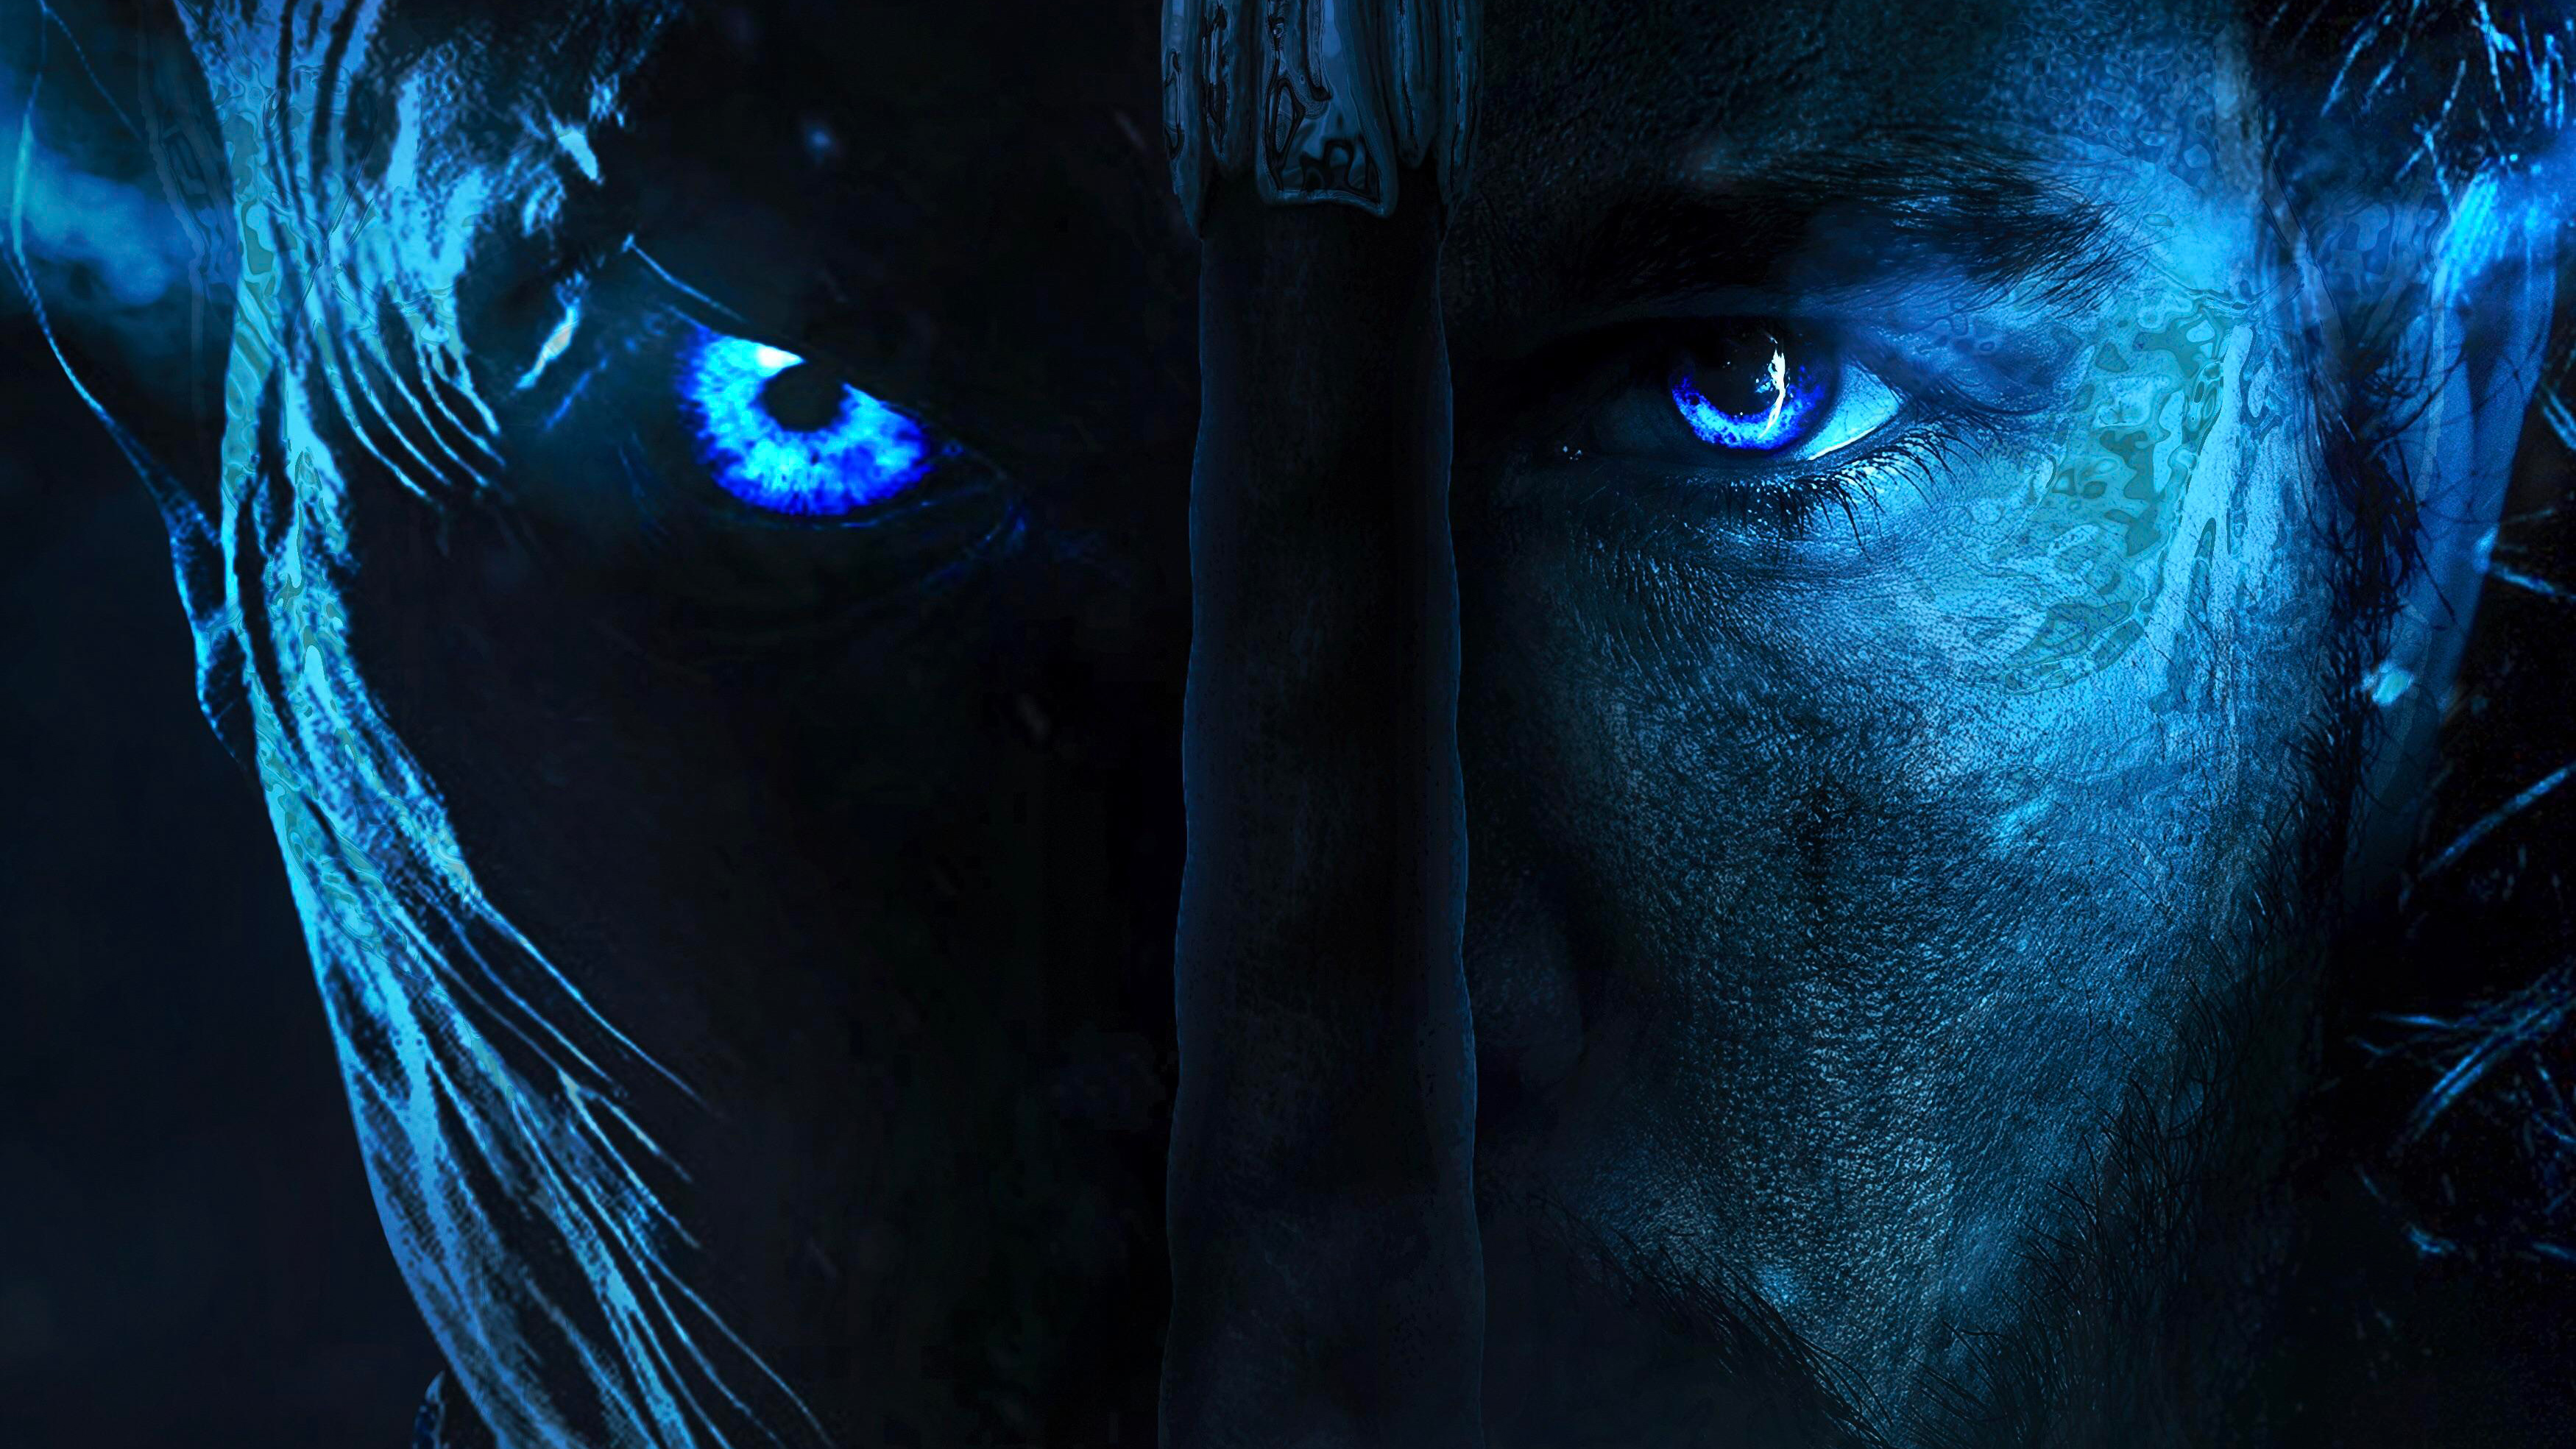 Game Of Thrones Season 8 2019, HD Tv Shows, 4k Wallpapers, Image